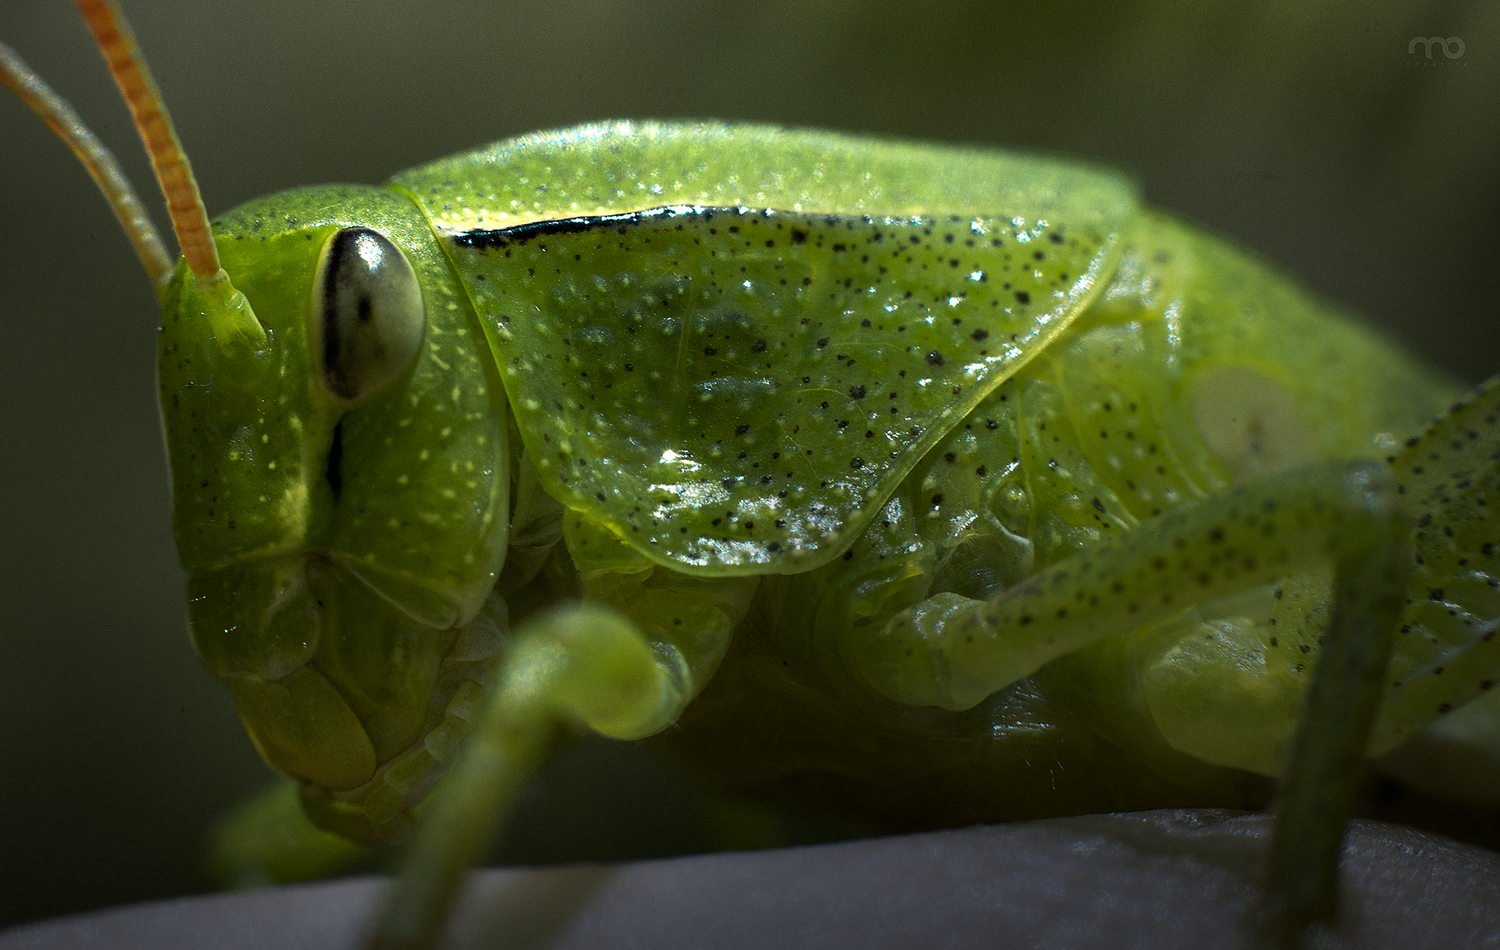 Grasshopper by Mario Olvera